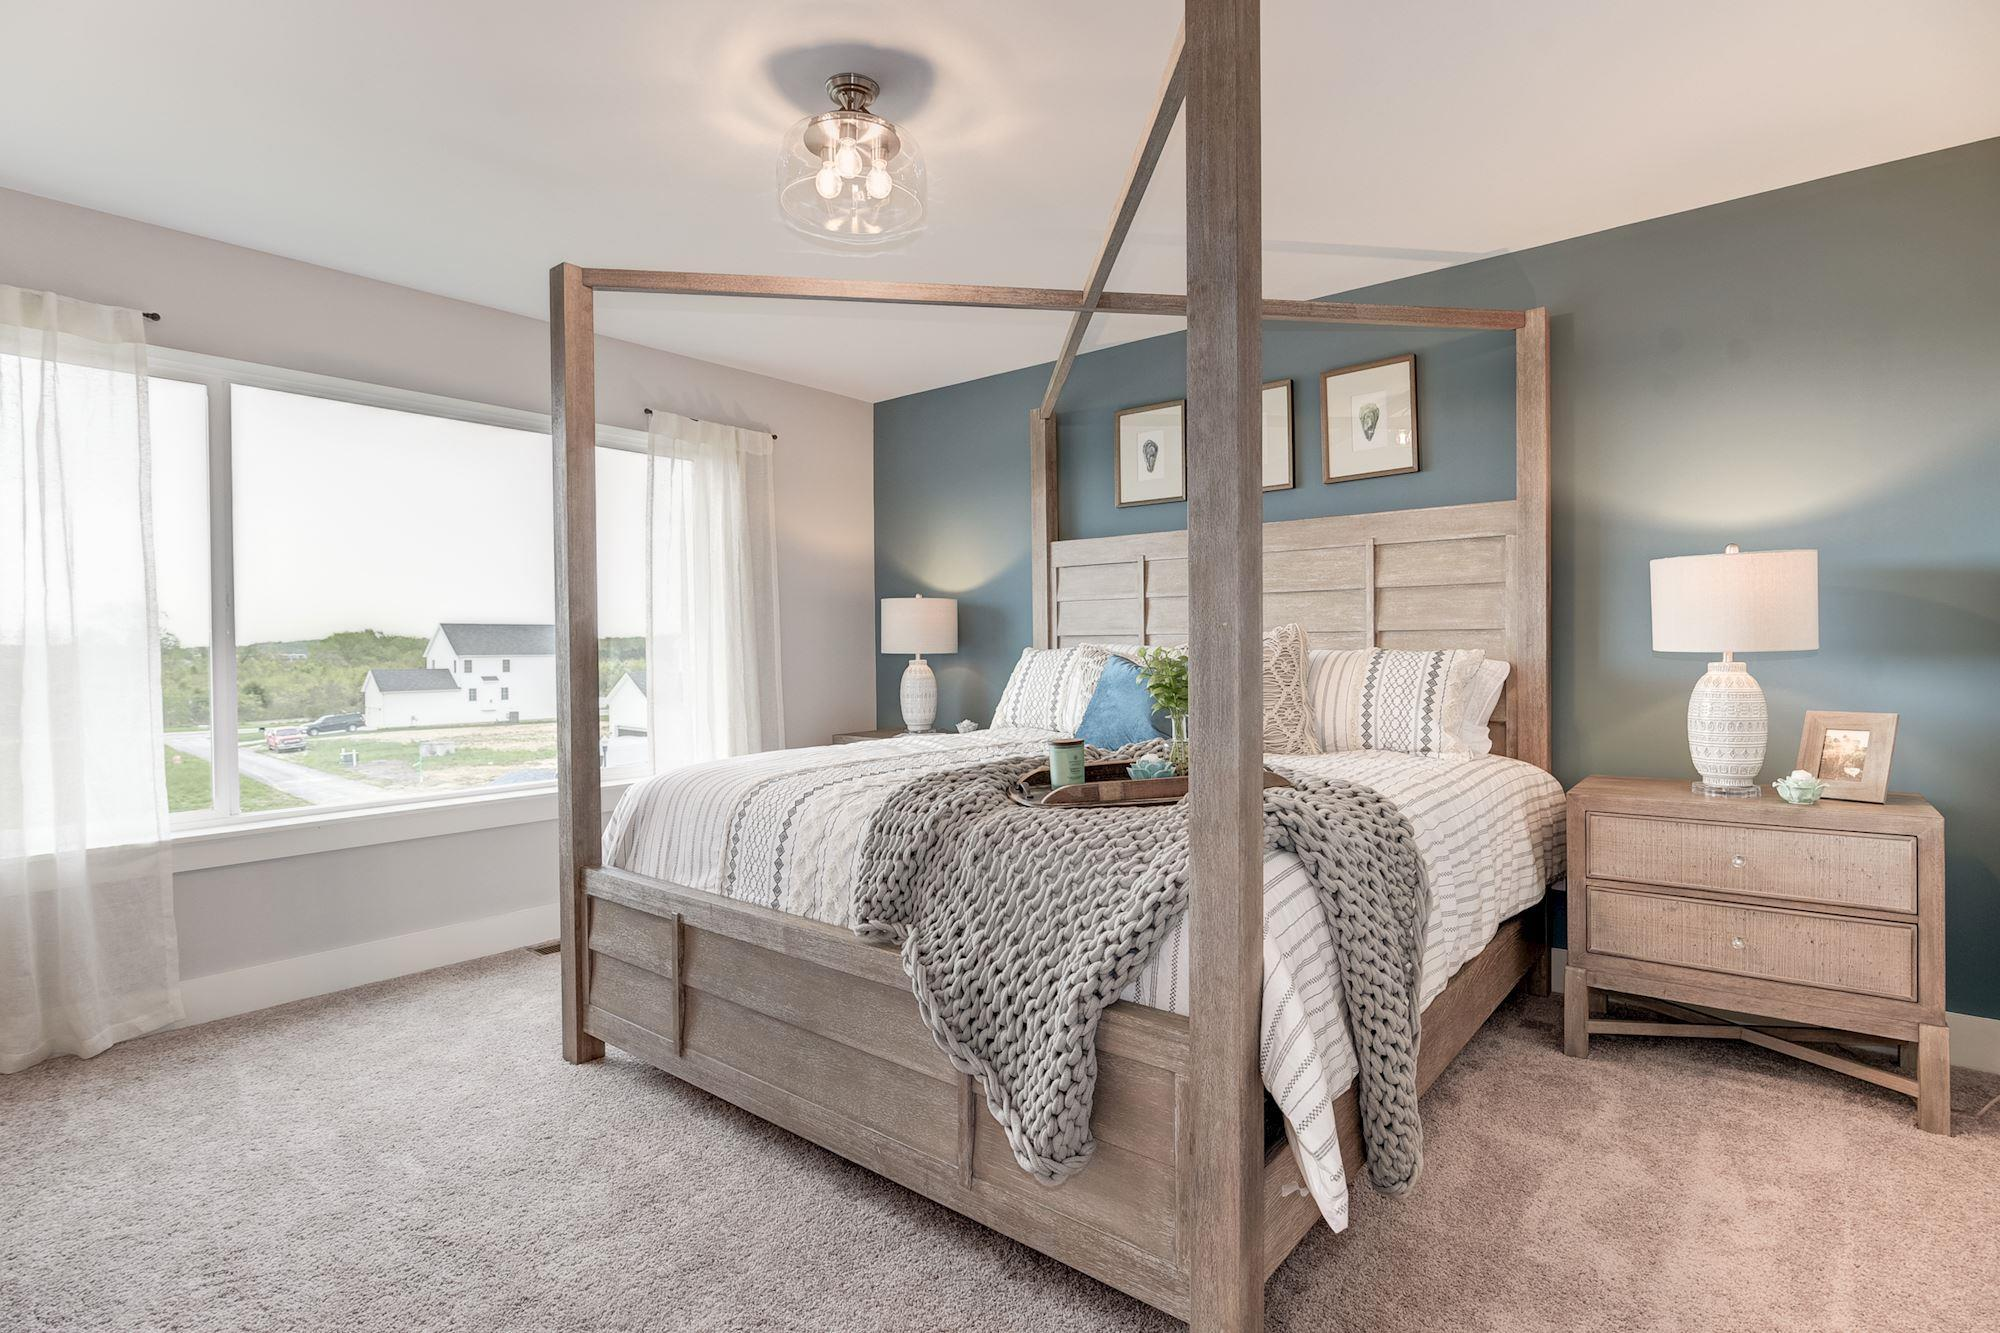 Bedroom featured in the Townhome-Interior Unit By Baldwin Homes Inc. in Eastern Shore, MD